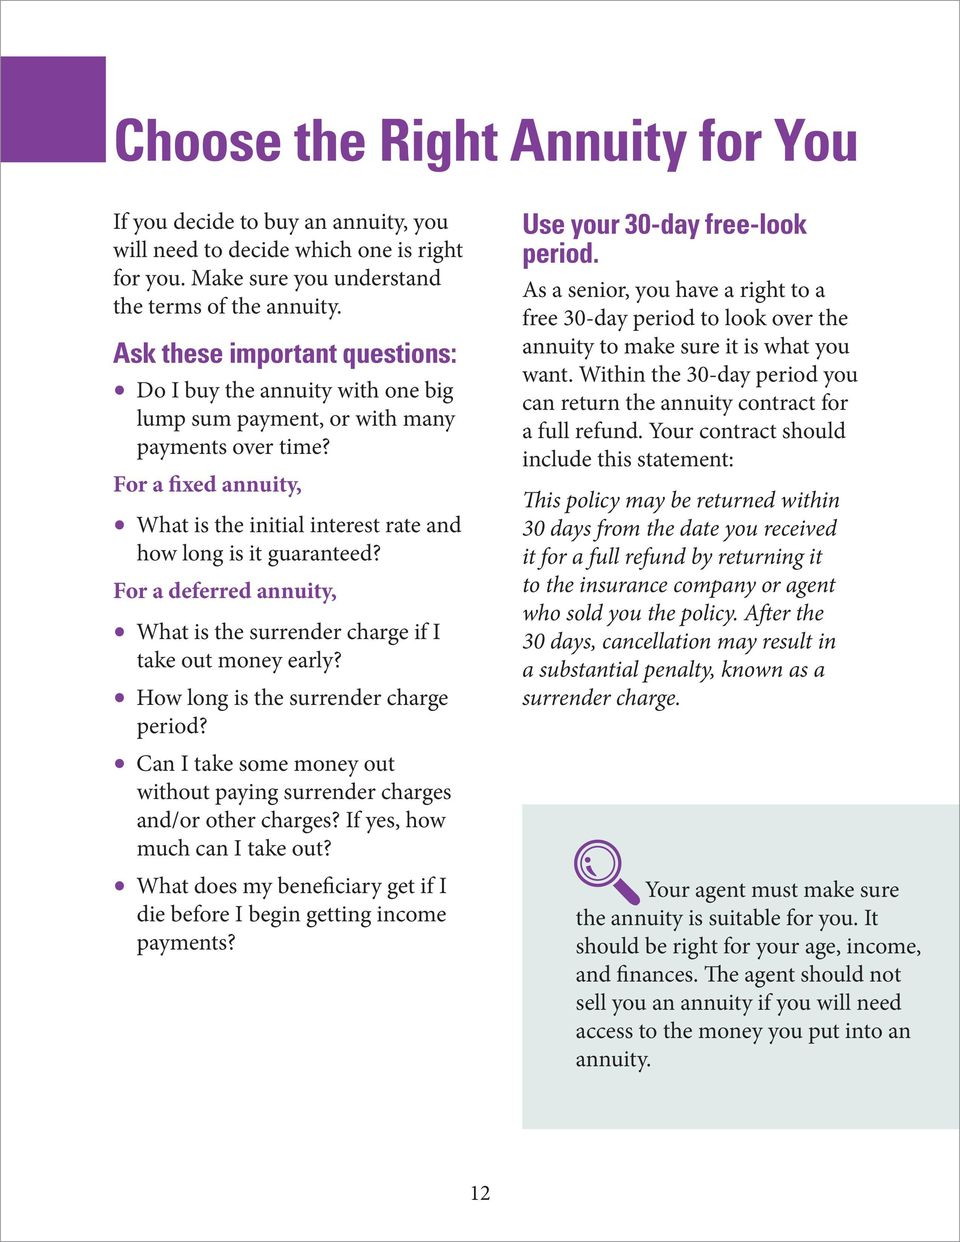 For a fixed annuity, What is the initial interest rate and how long is it guaranteed? For a deferred annuity, What is the surrender charge if I take out money early?